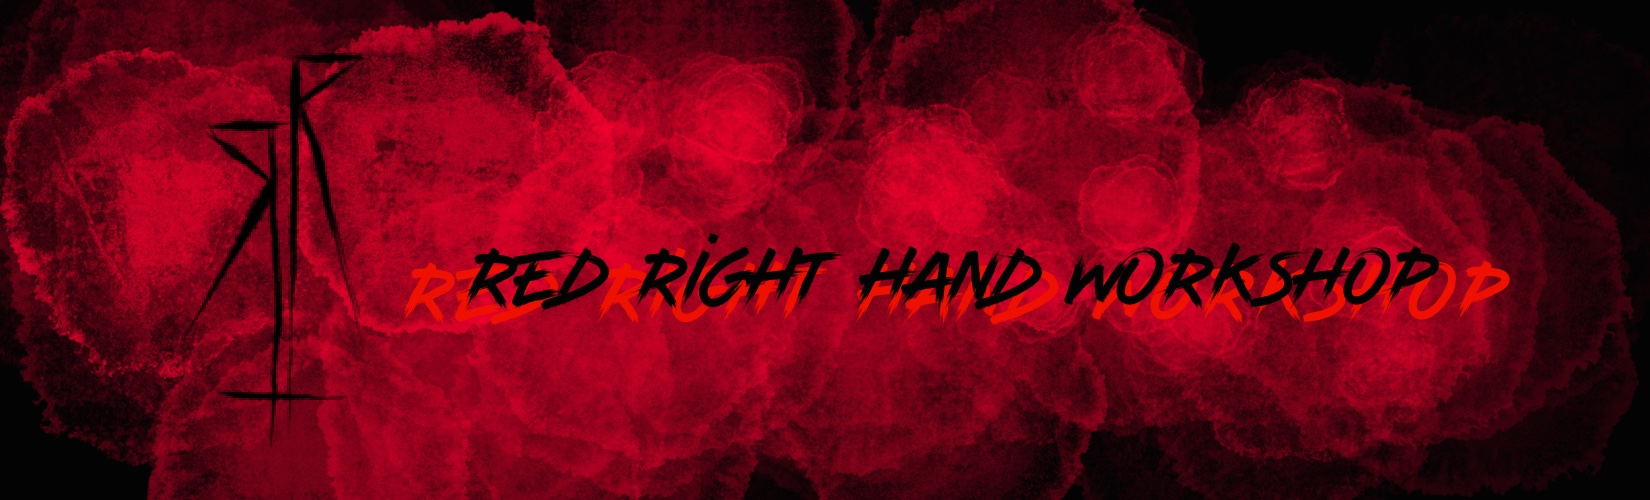 Logo Red Right Hand Workshop